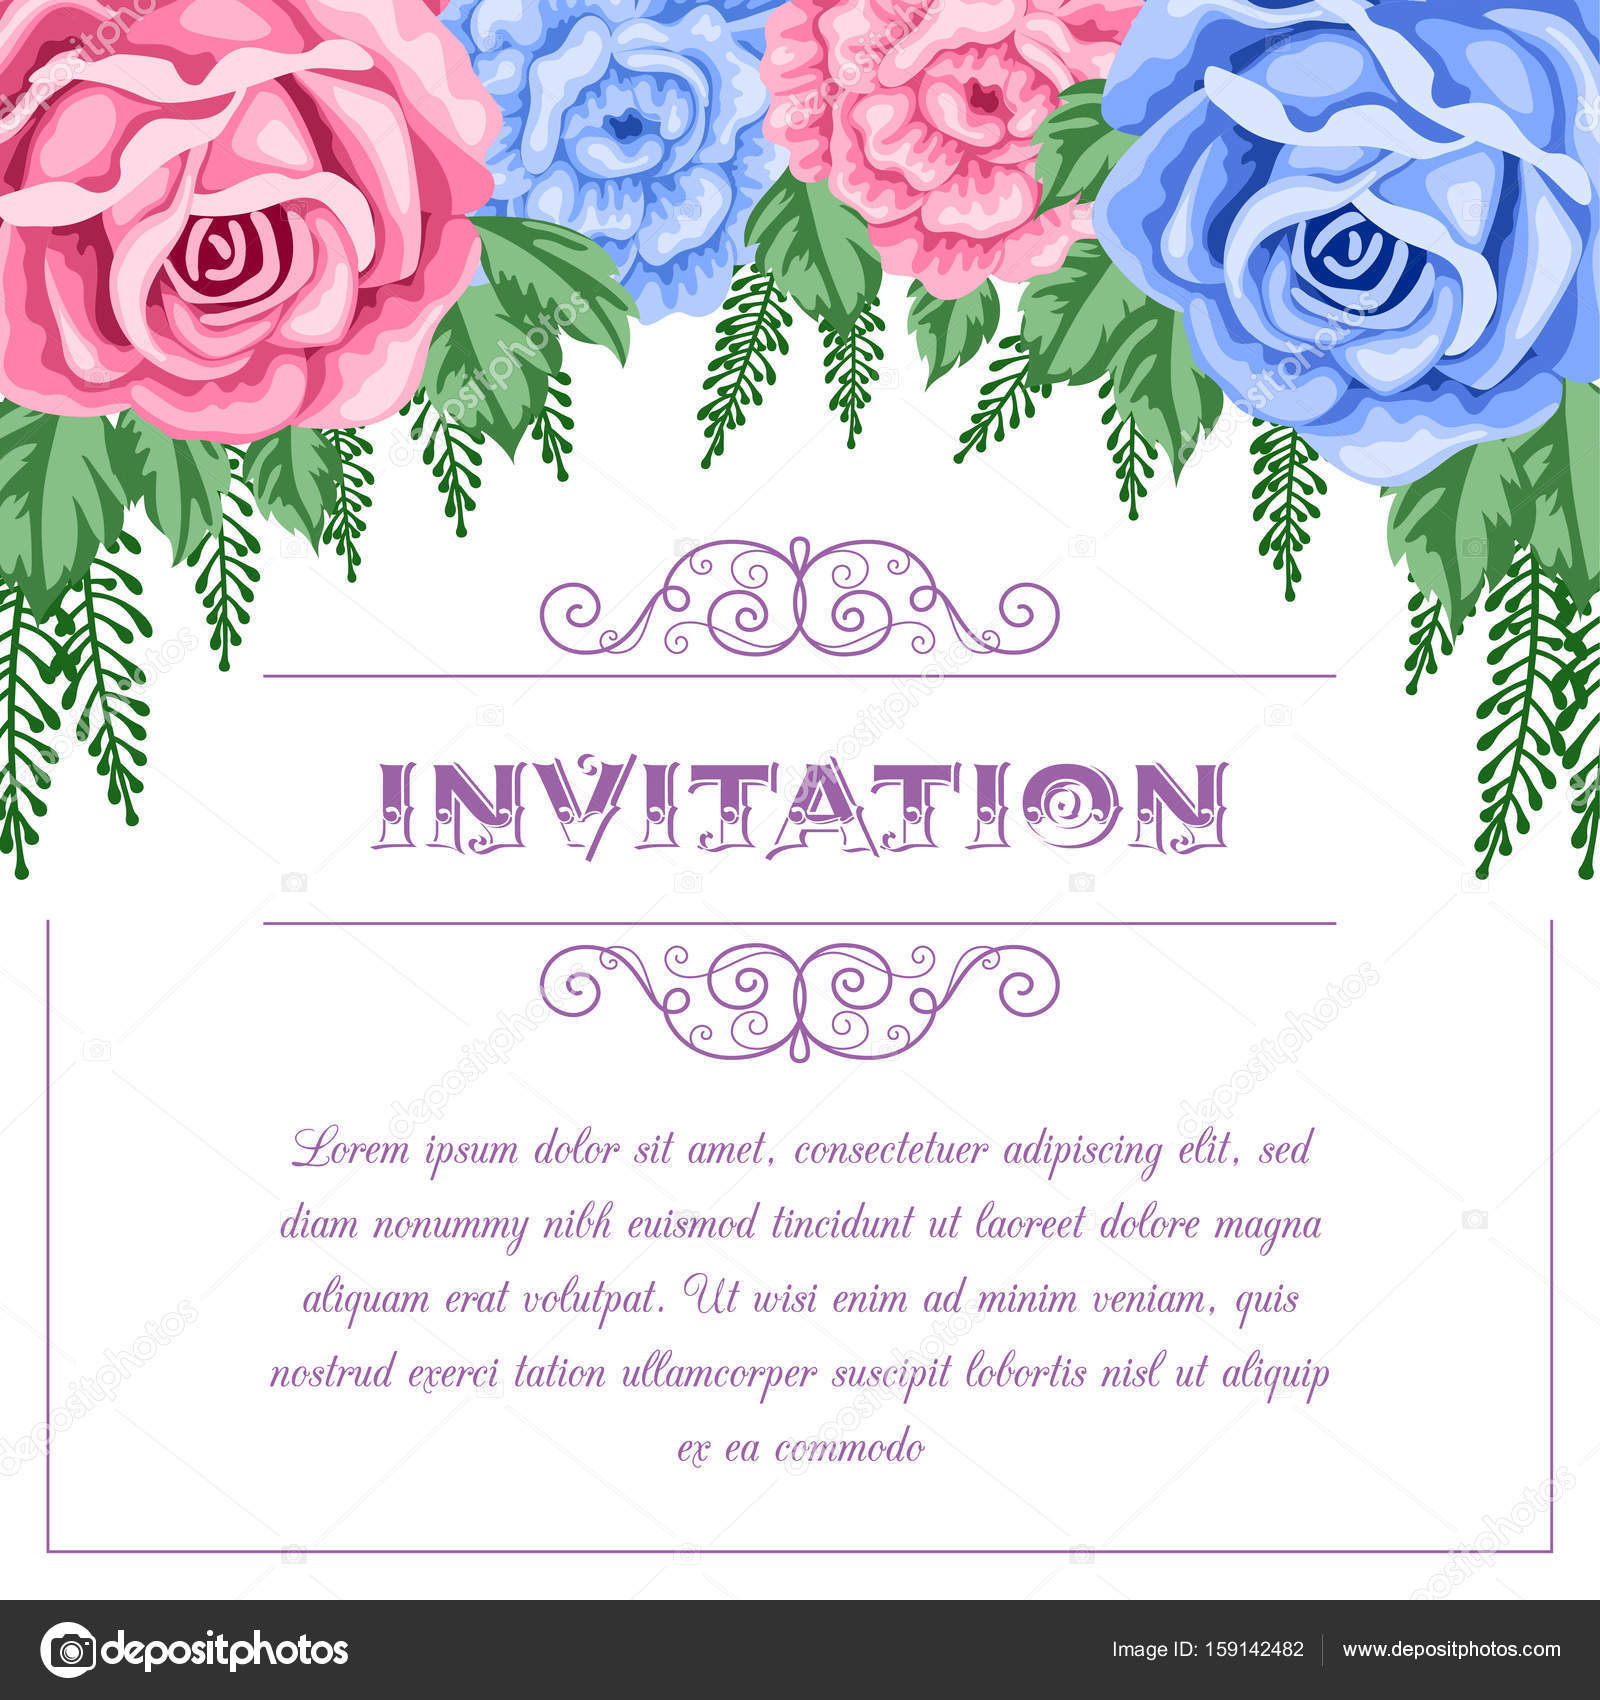 Retro bridal shower invitation stock vector nonikastar 159142482 bridal shower or wedding invitation template with flowers vector illustration in retro style vector by nonikastar filmwisefo